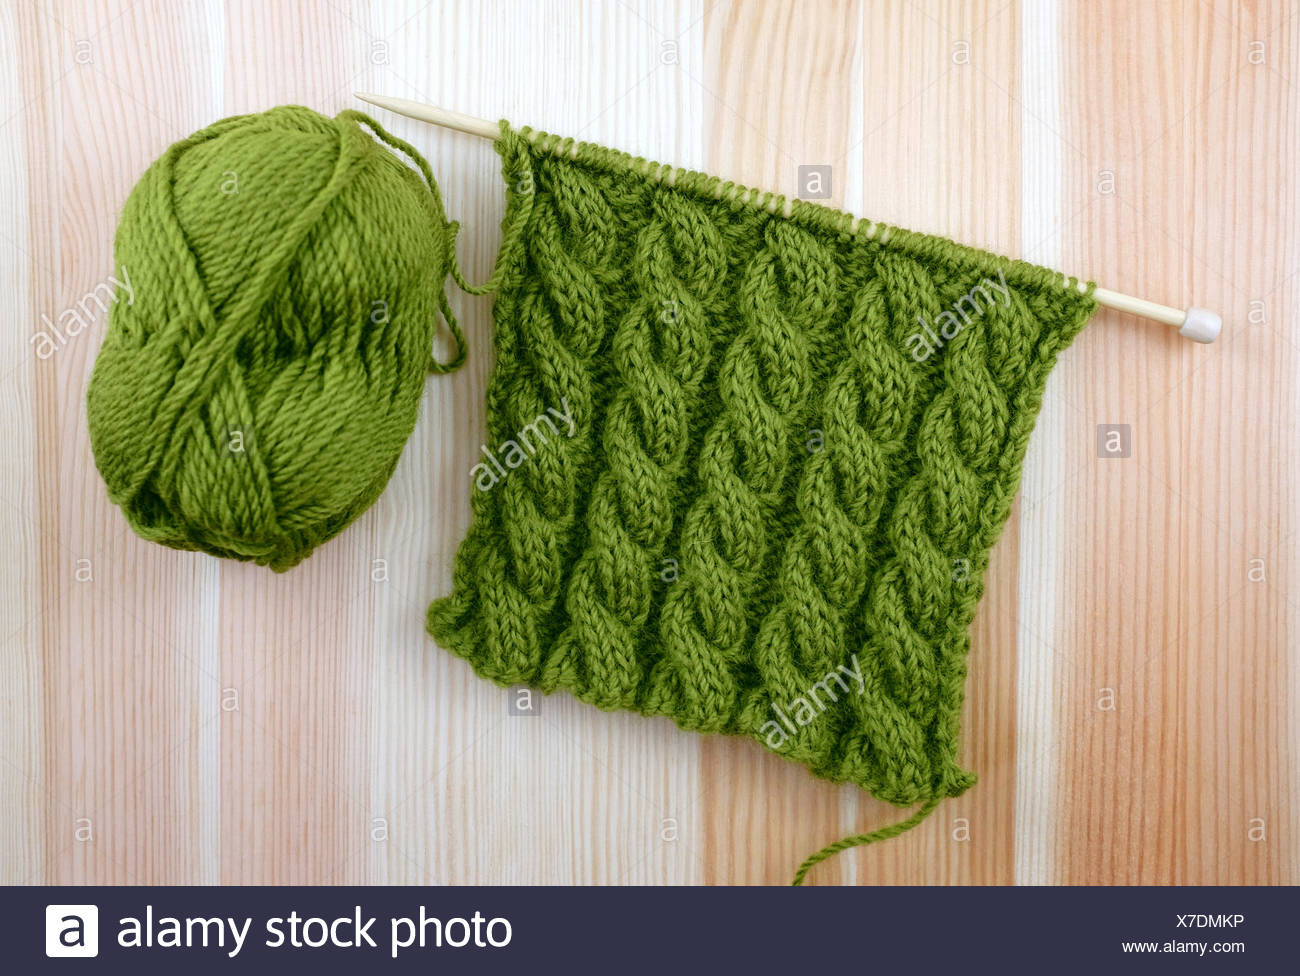 Cable Knitting Stock Photos & Cable Knitting Stock Images ...